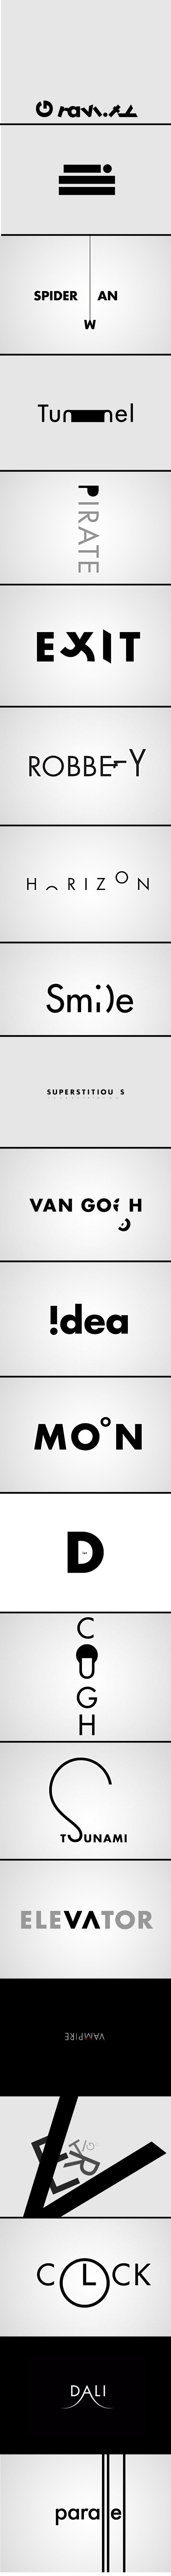 Clever typo logo's